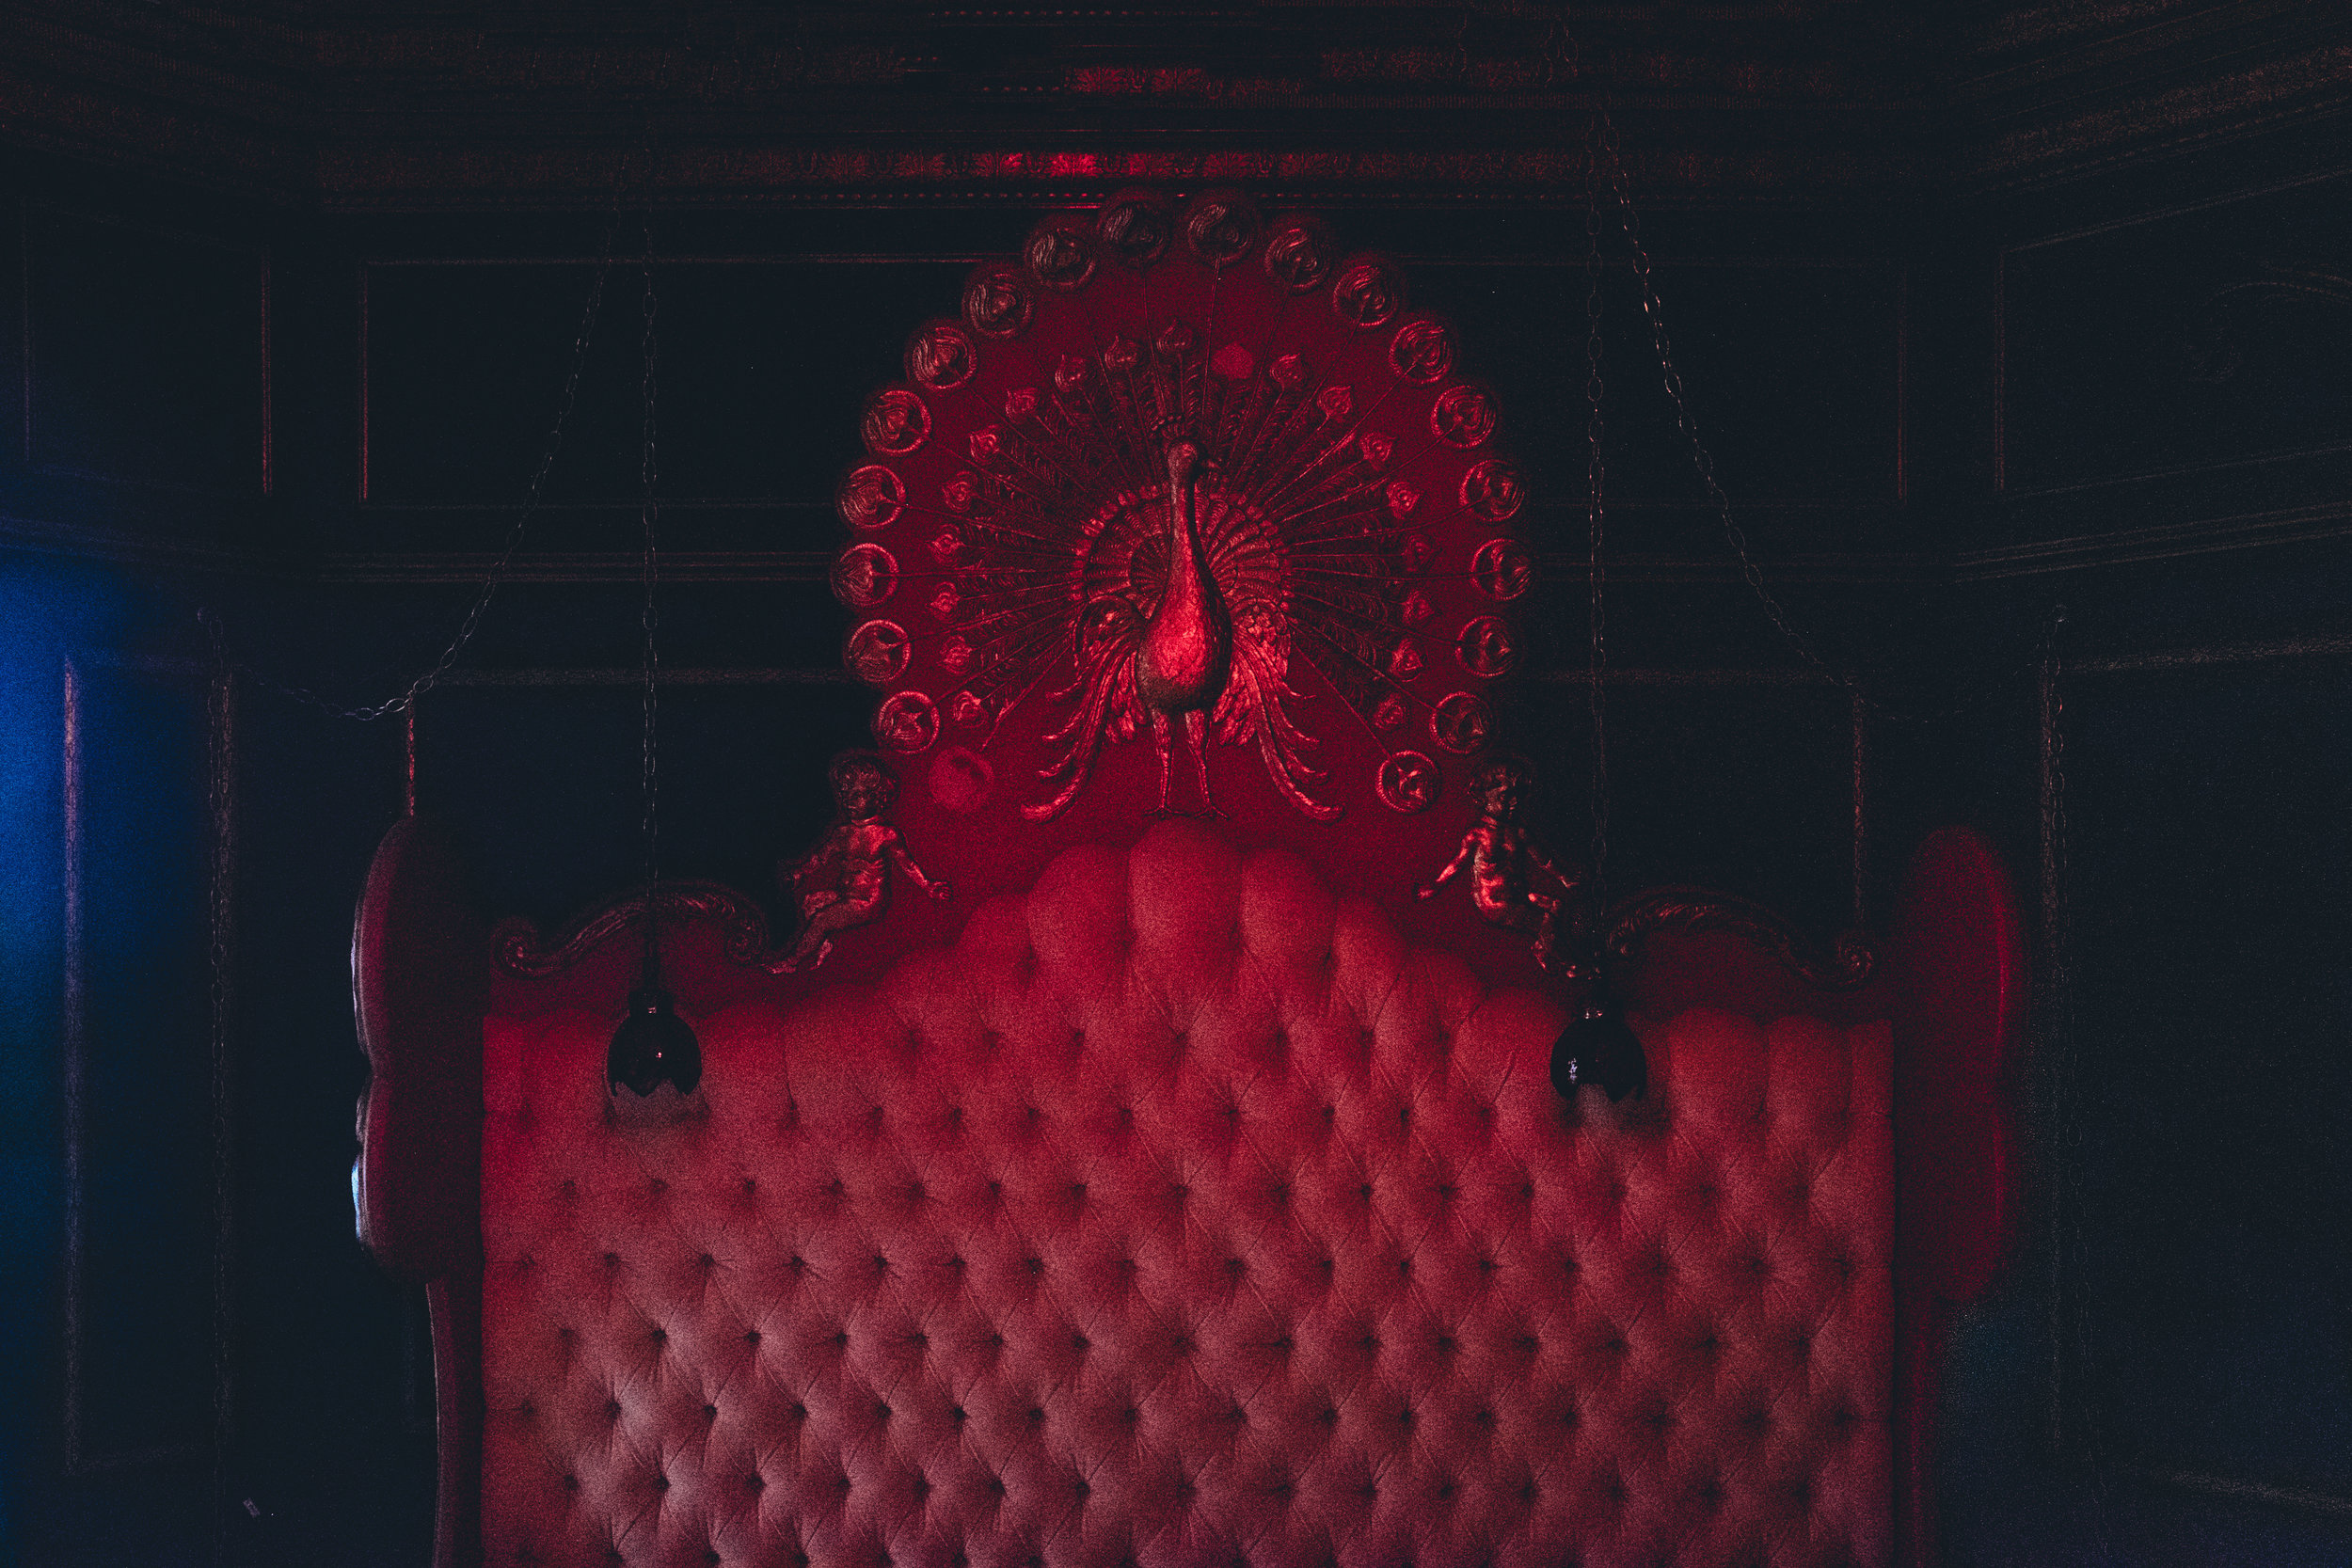 The Peacock Room is the only room in the entire penthouse with red lightbulbs.